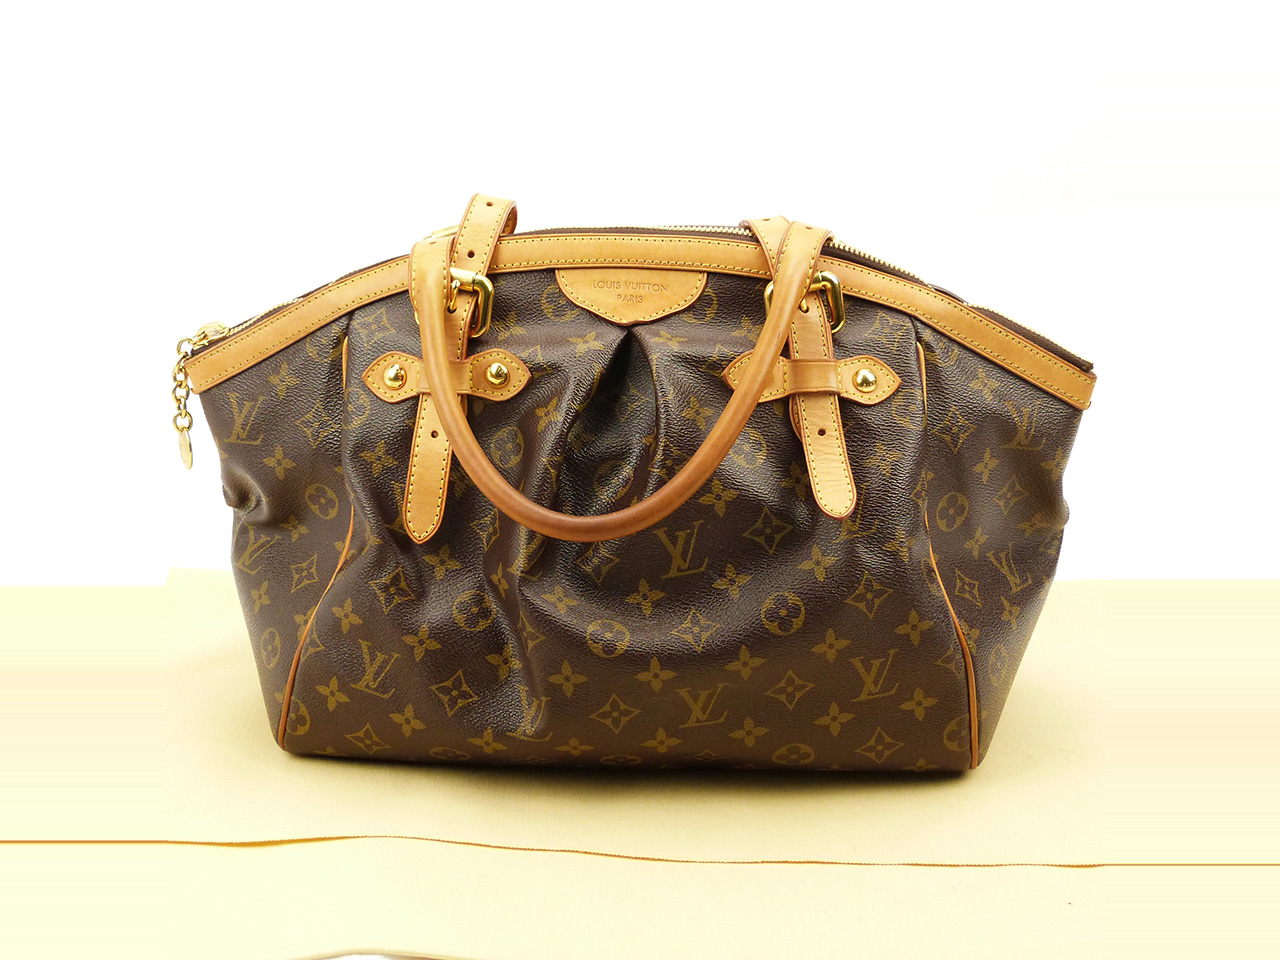 Sac à main Louis Vuitton Tivoli GM Authentique d'occasion ajustable en toile Monogram